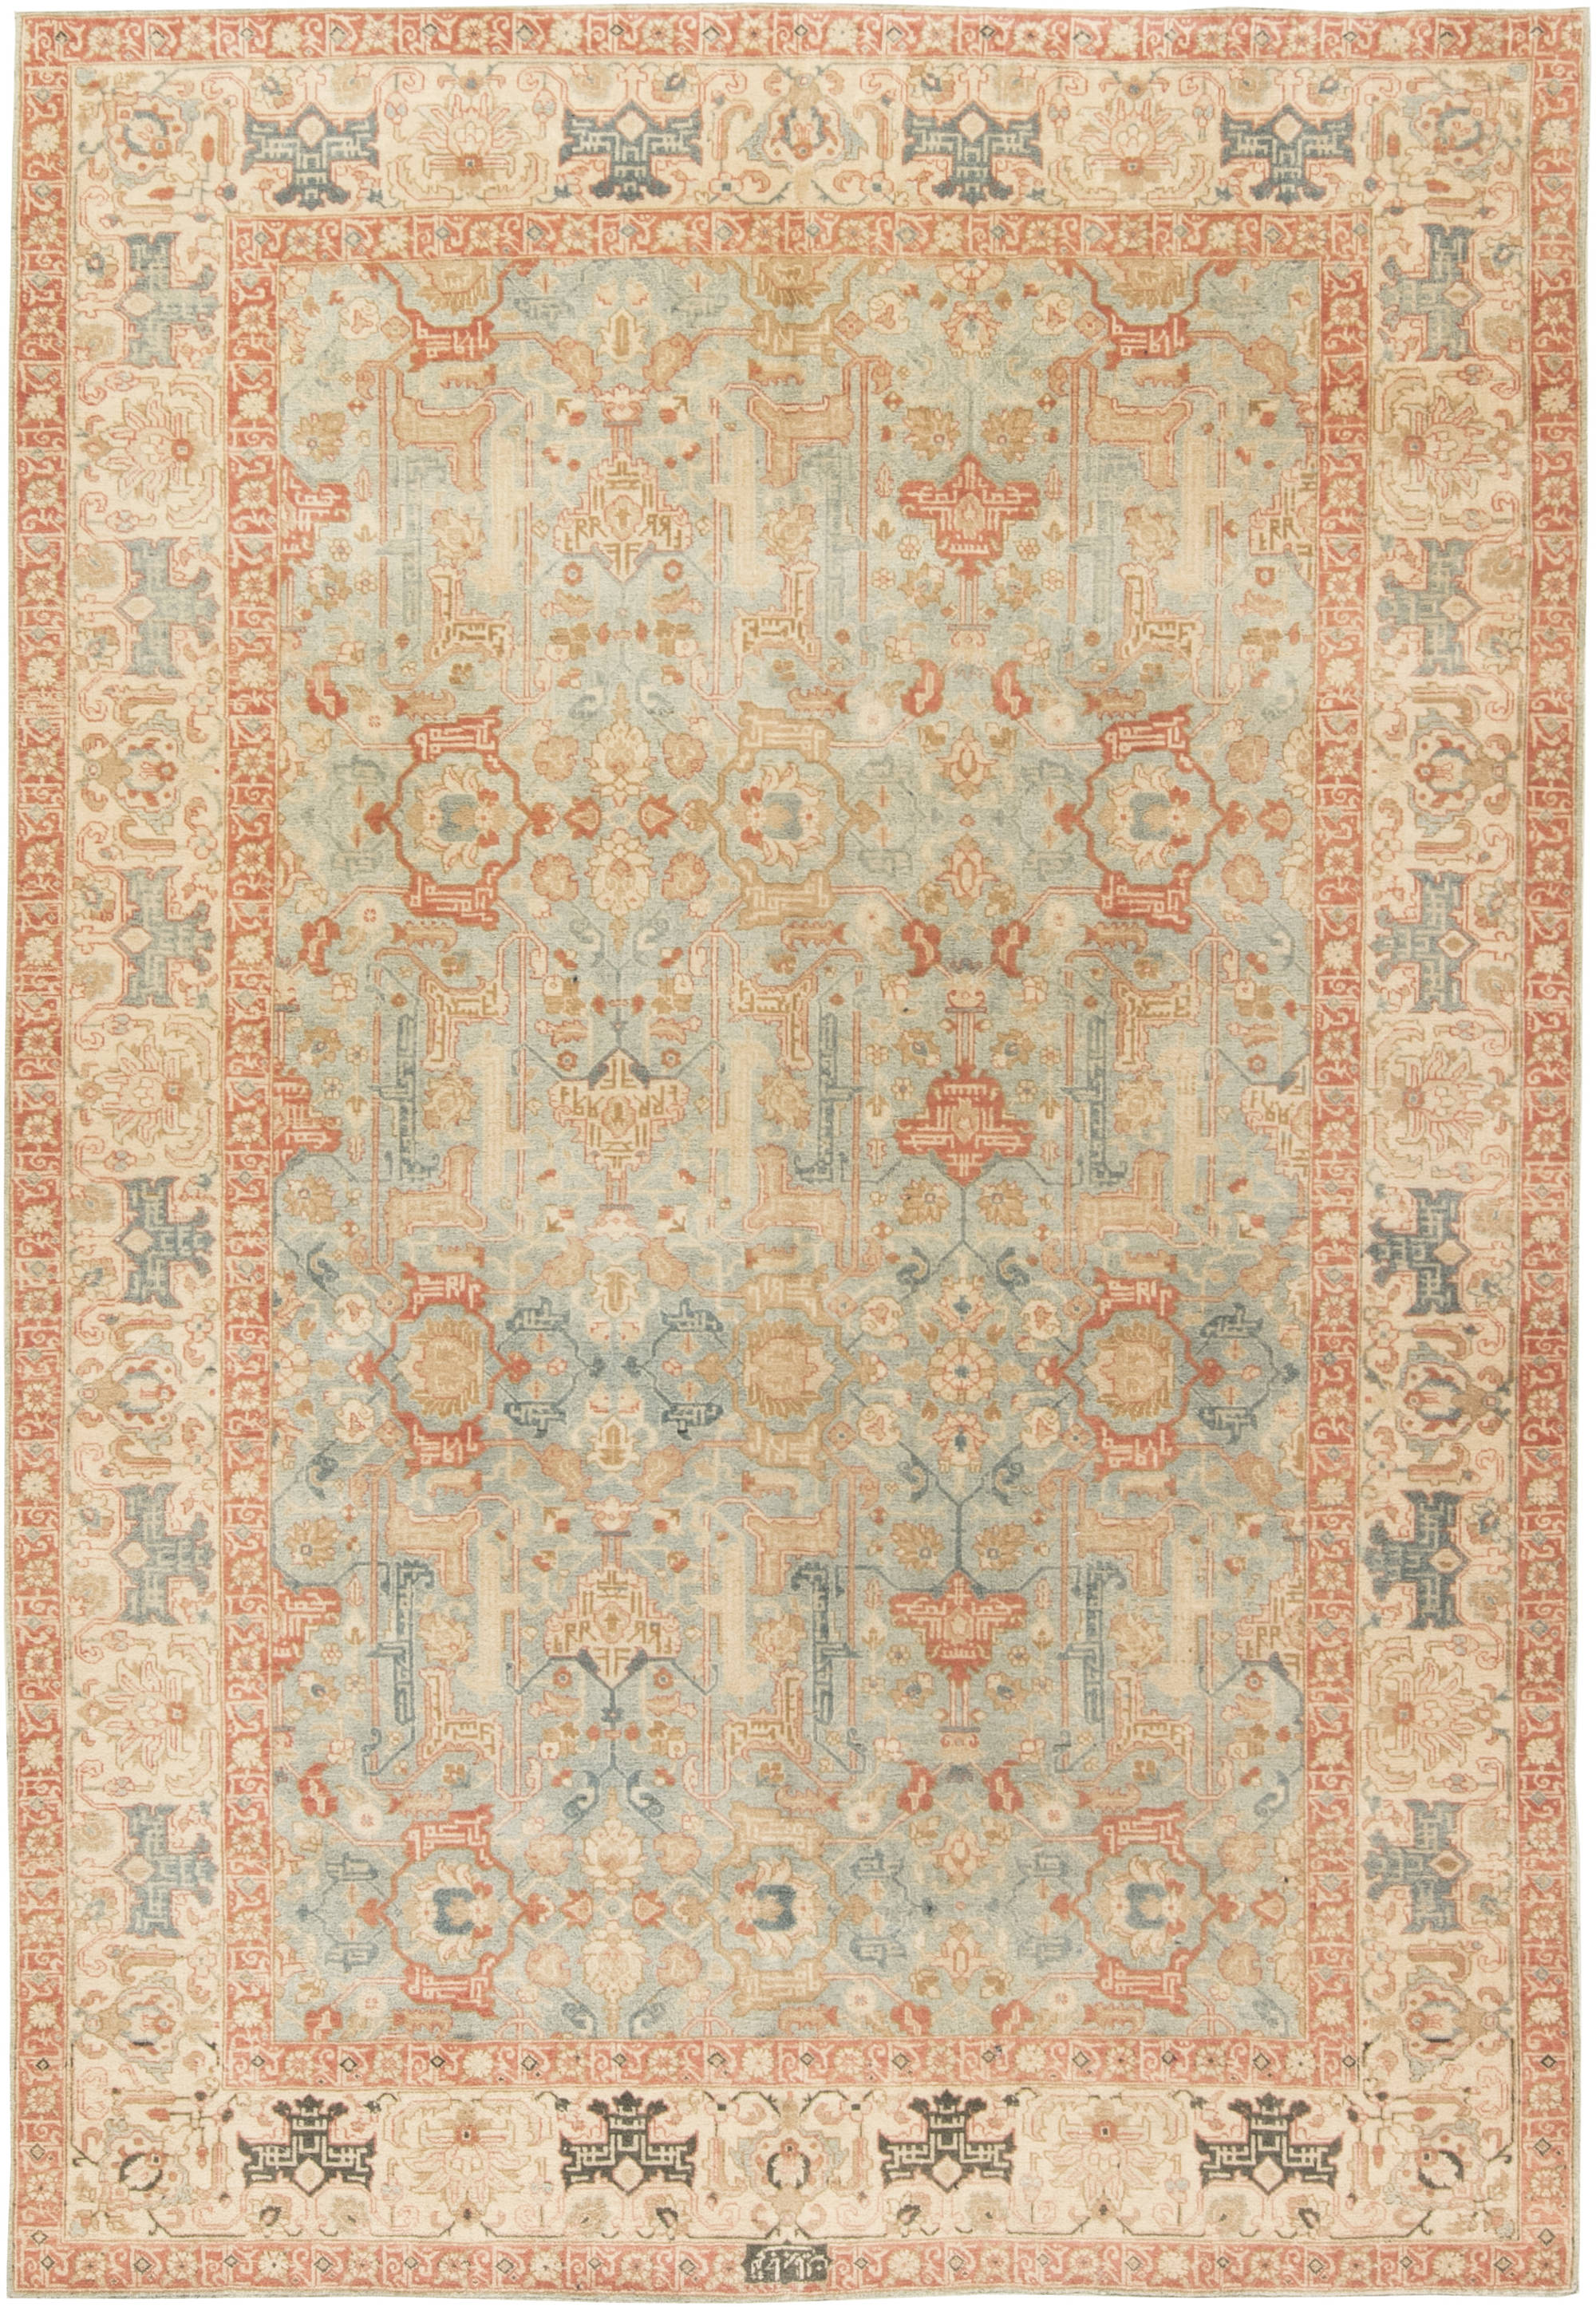 Antique Persian Tabriz Carpet Bb6482 By Doris Leslie Blau